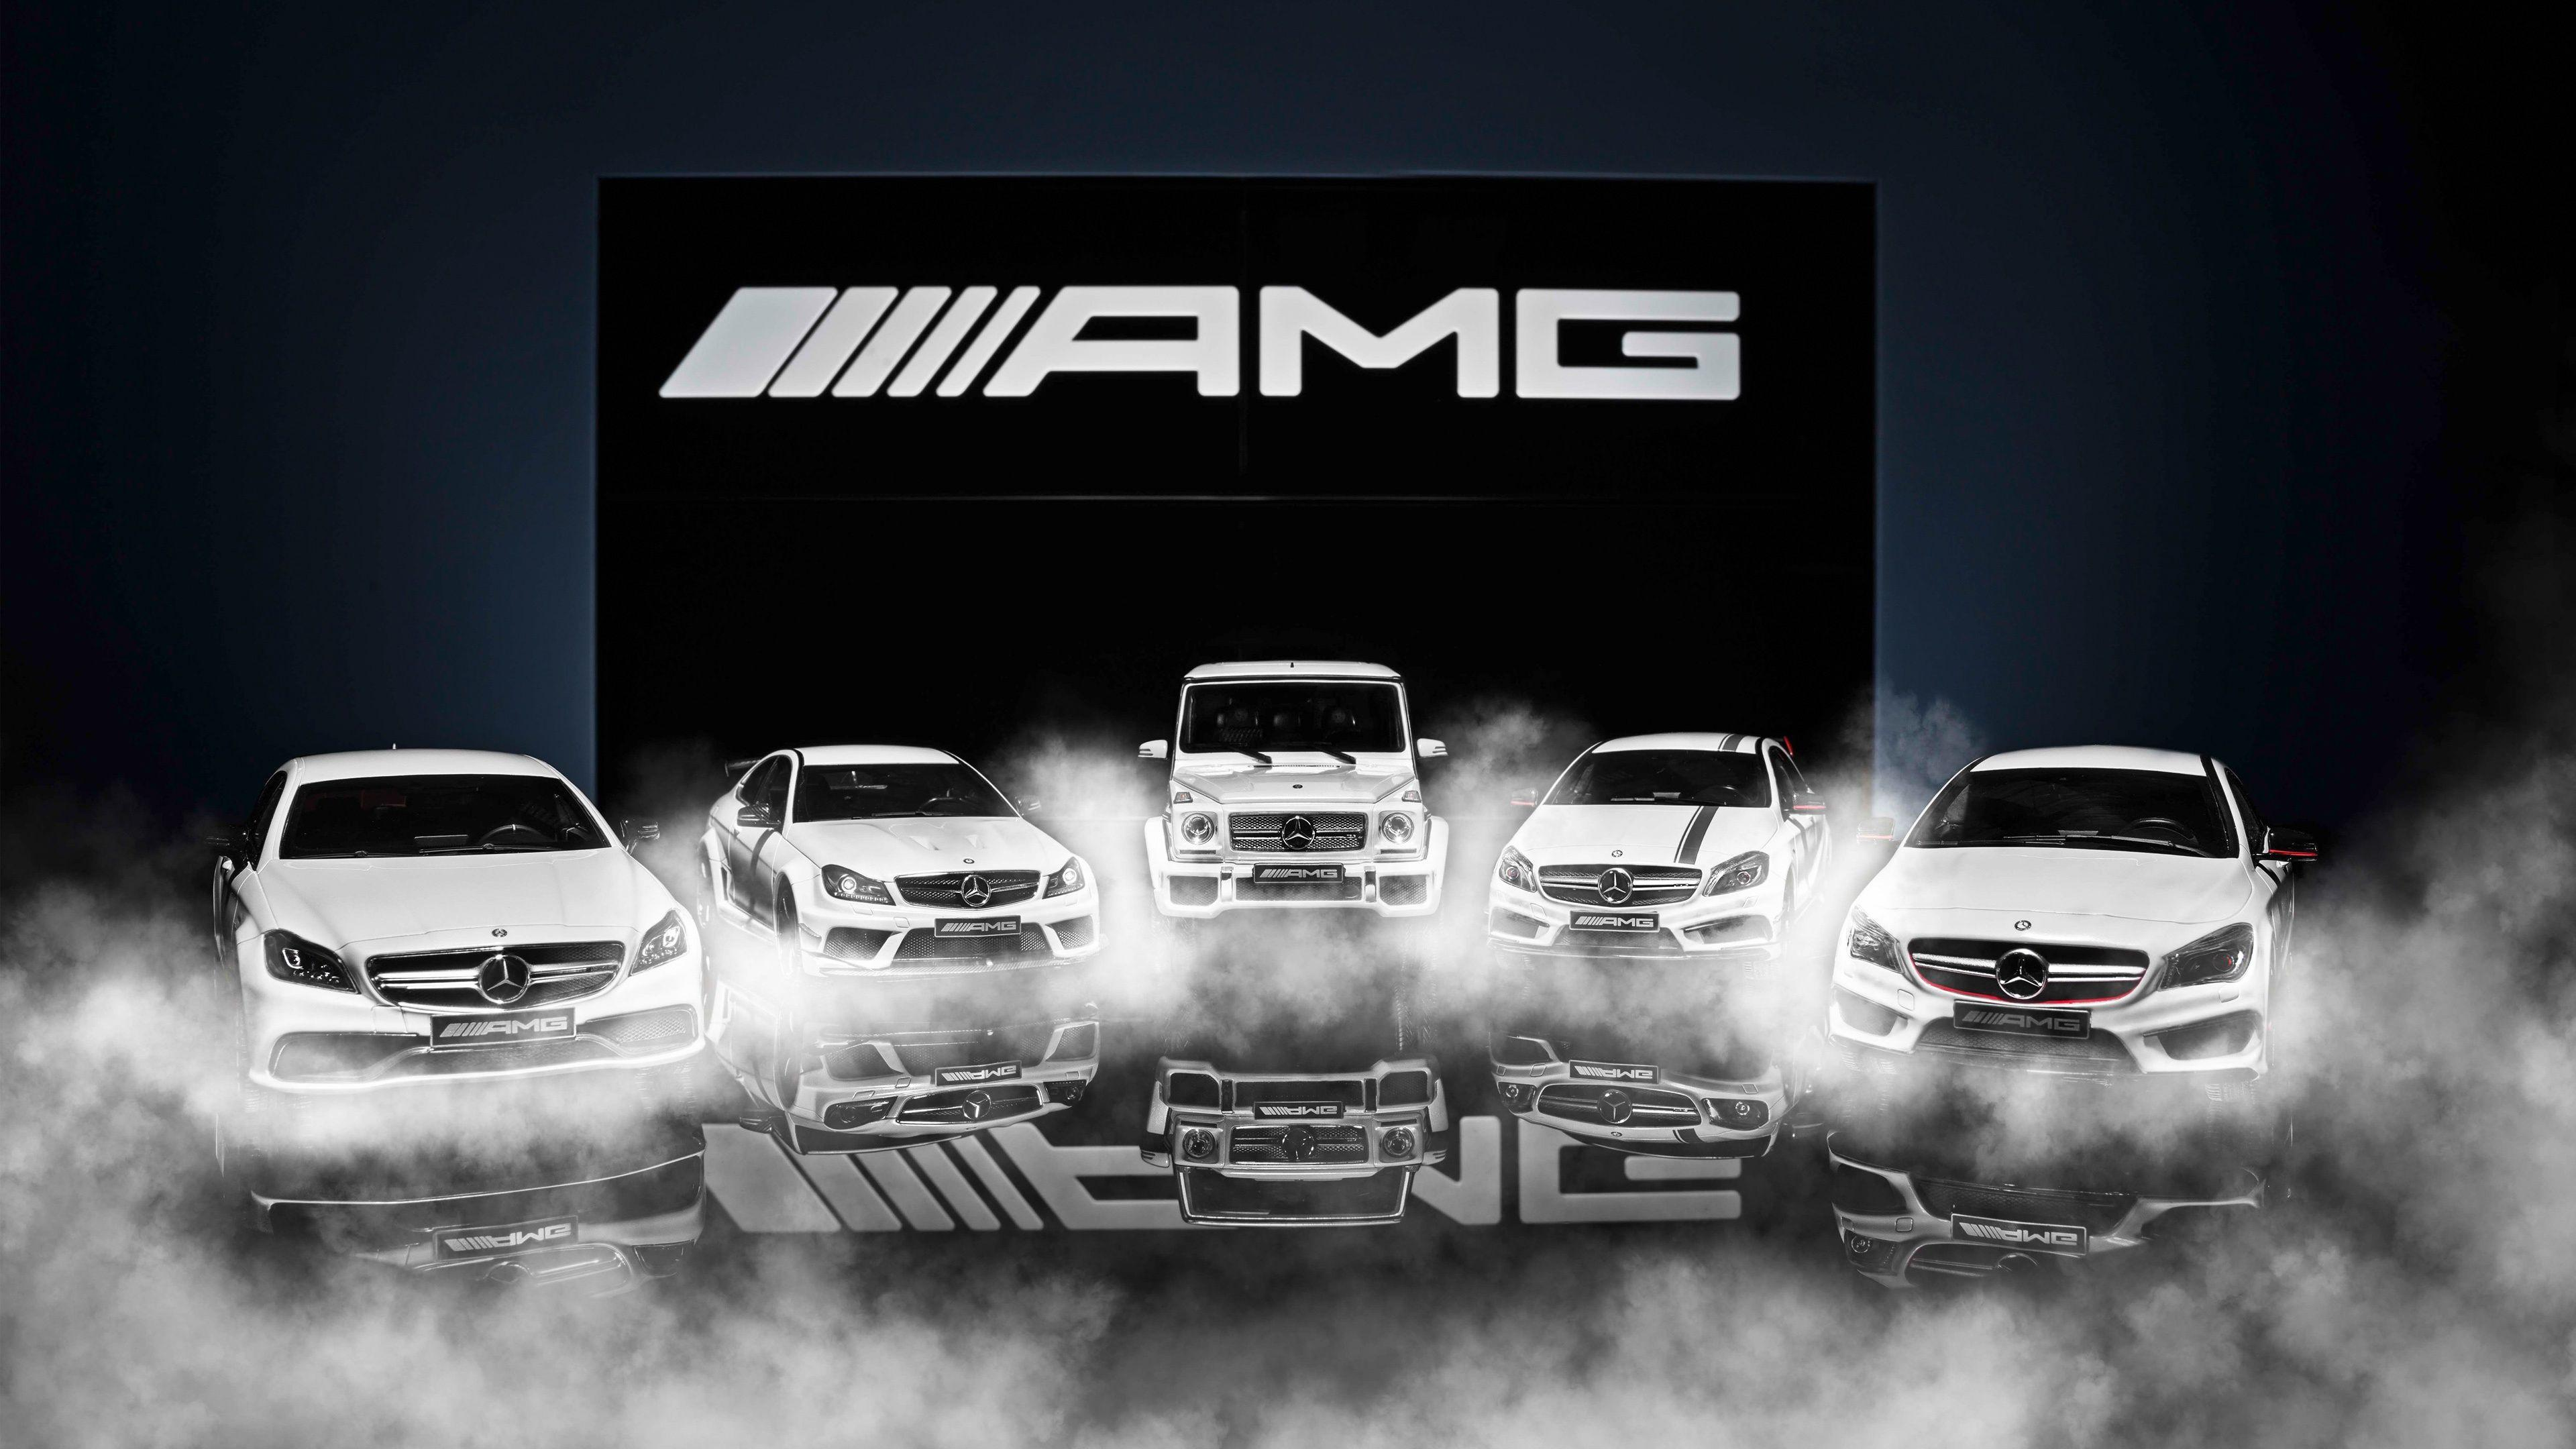 Mercedes Benz AMG Fashion Week Wallpapers in jpg format for free